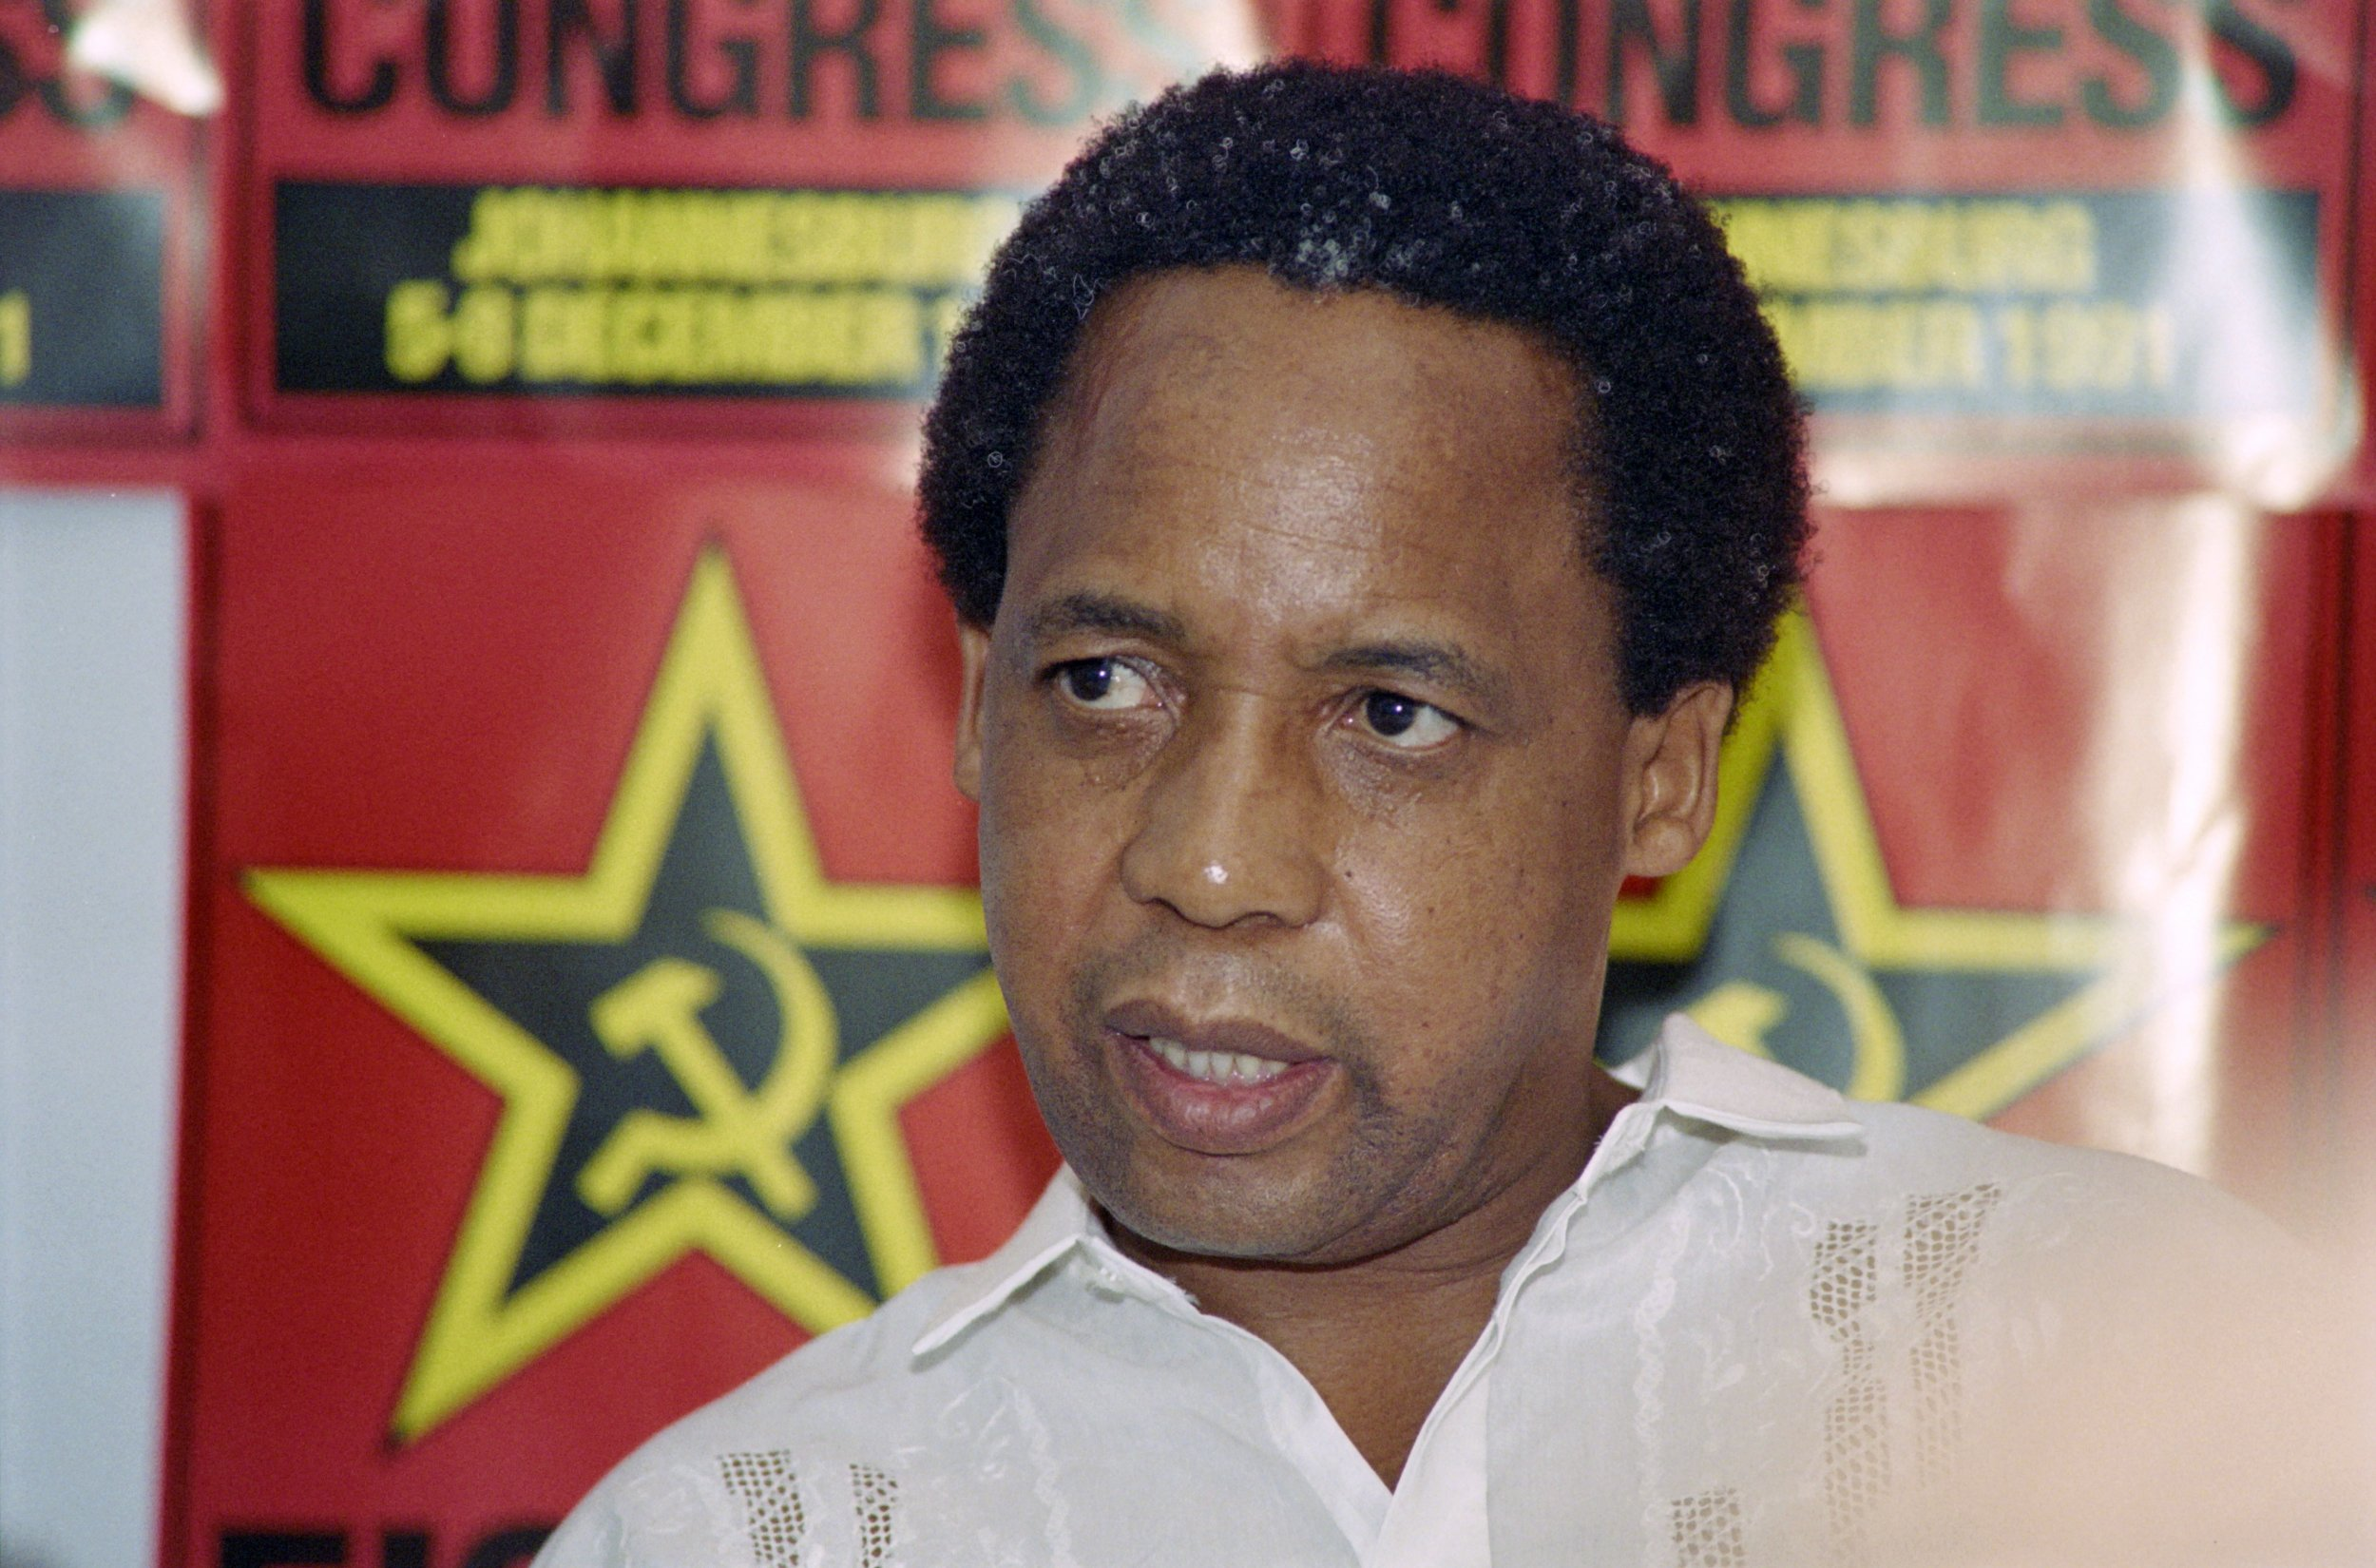 South African Communist Party leader Chris Hani speaks at a press conference.